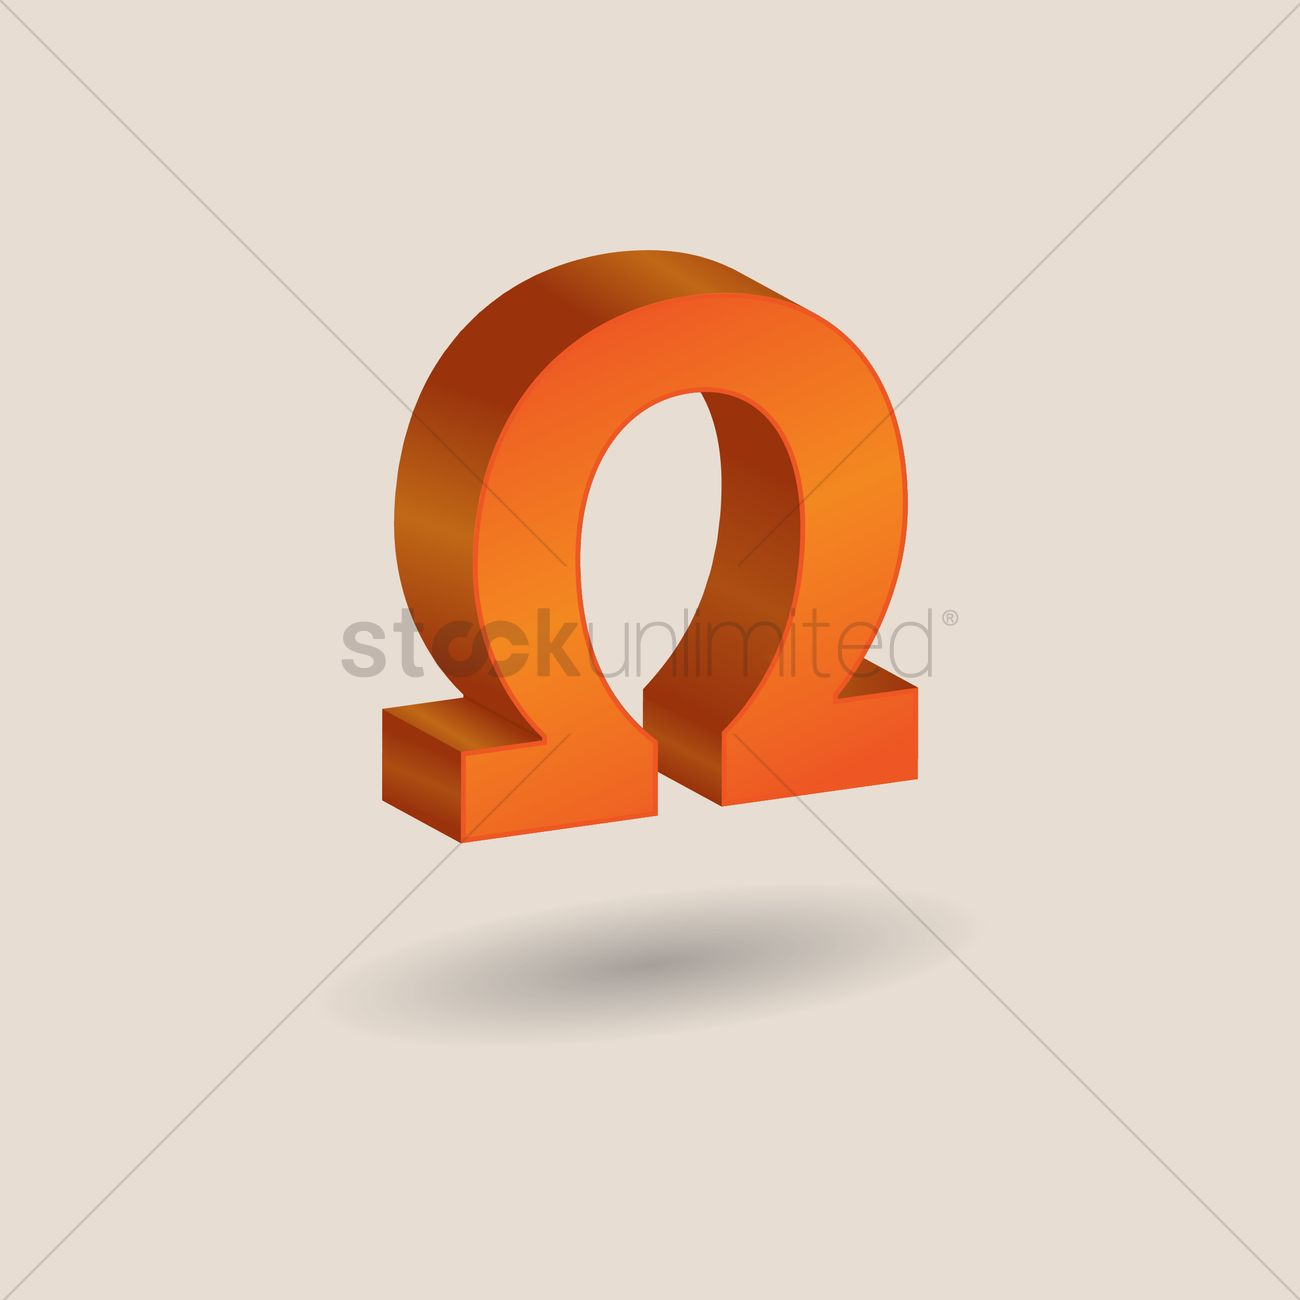 Omega Symbol Vector Image 1608236 Stockunlimited